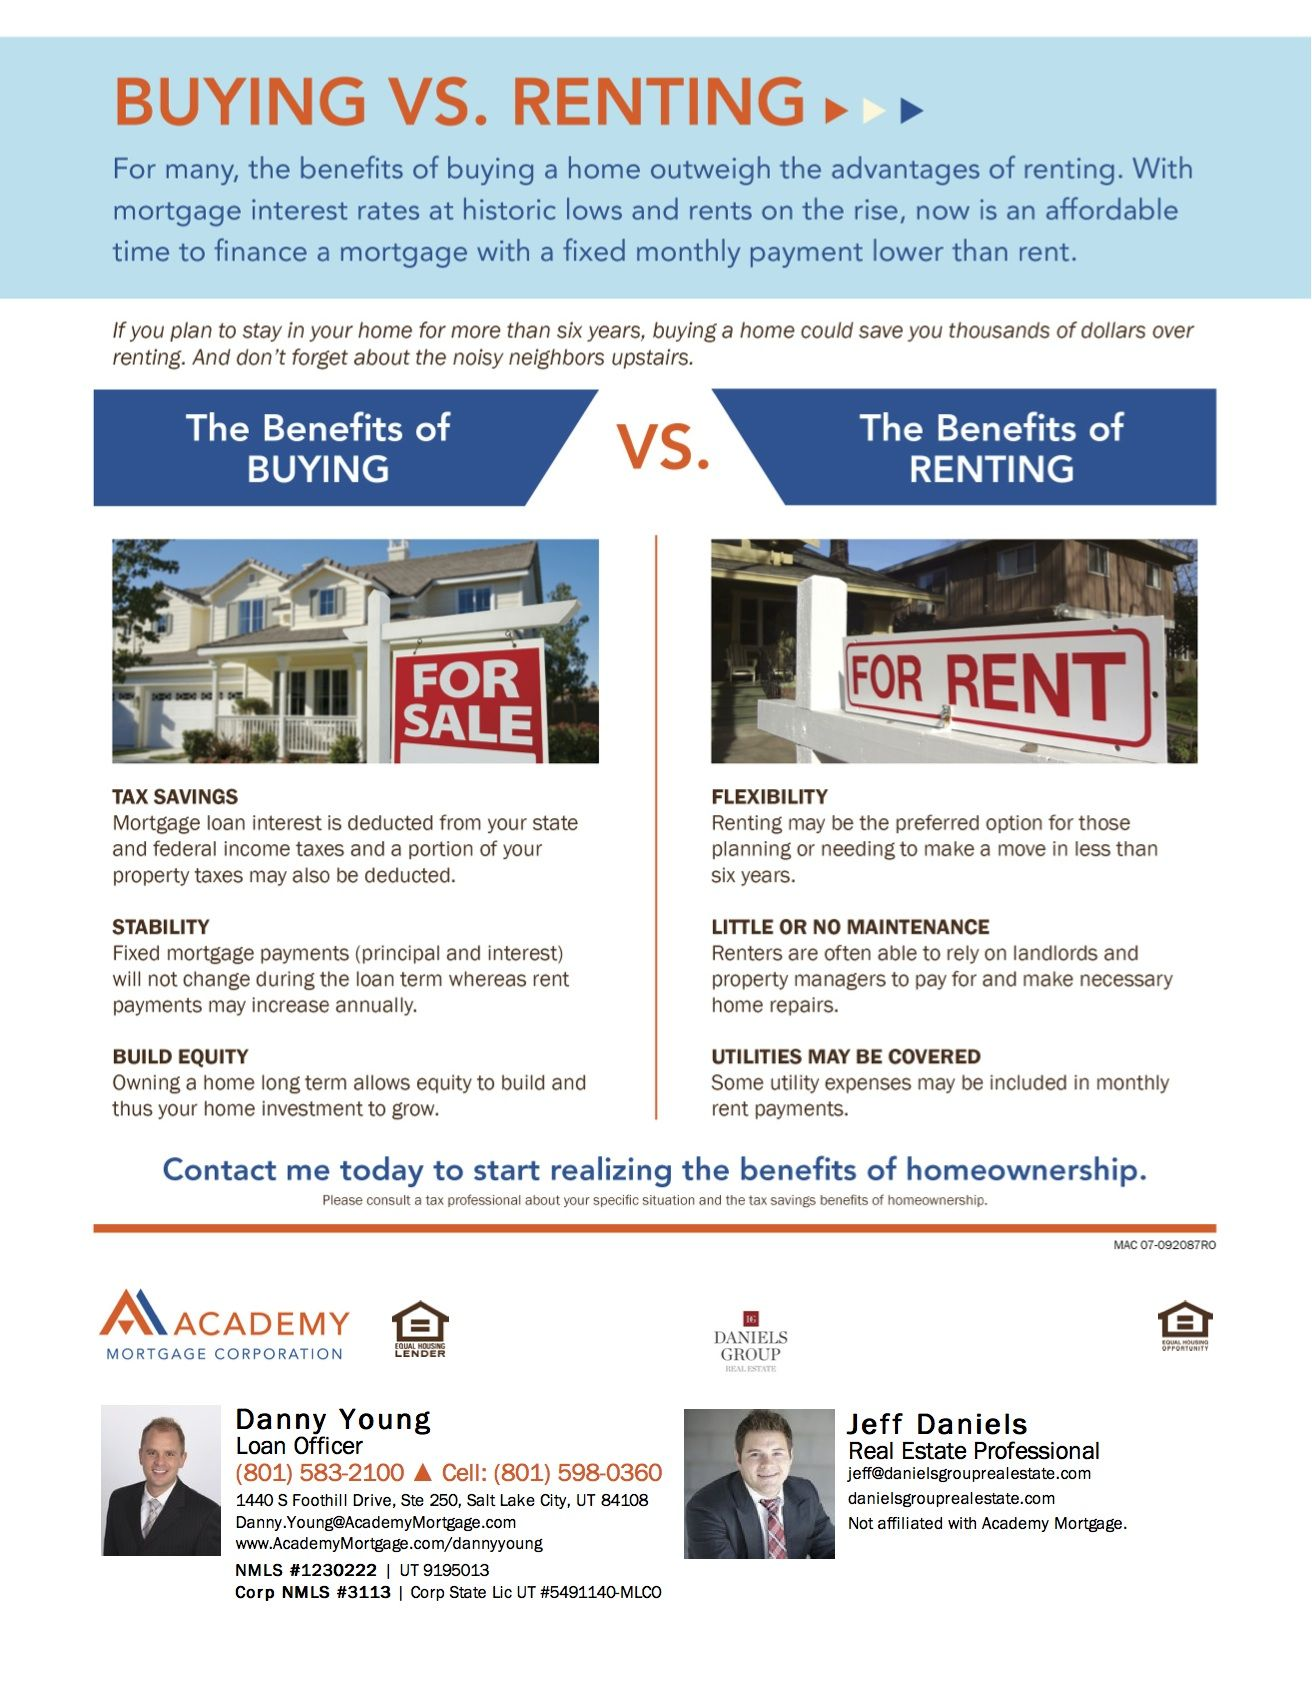 An Overview Of The Benefits Of Buying A Home Vs Renting